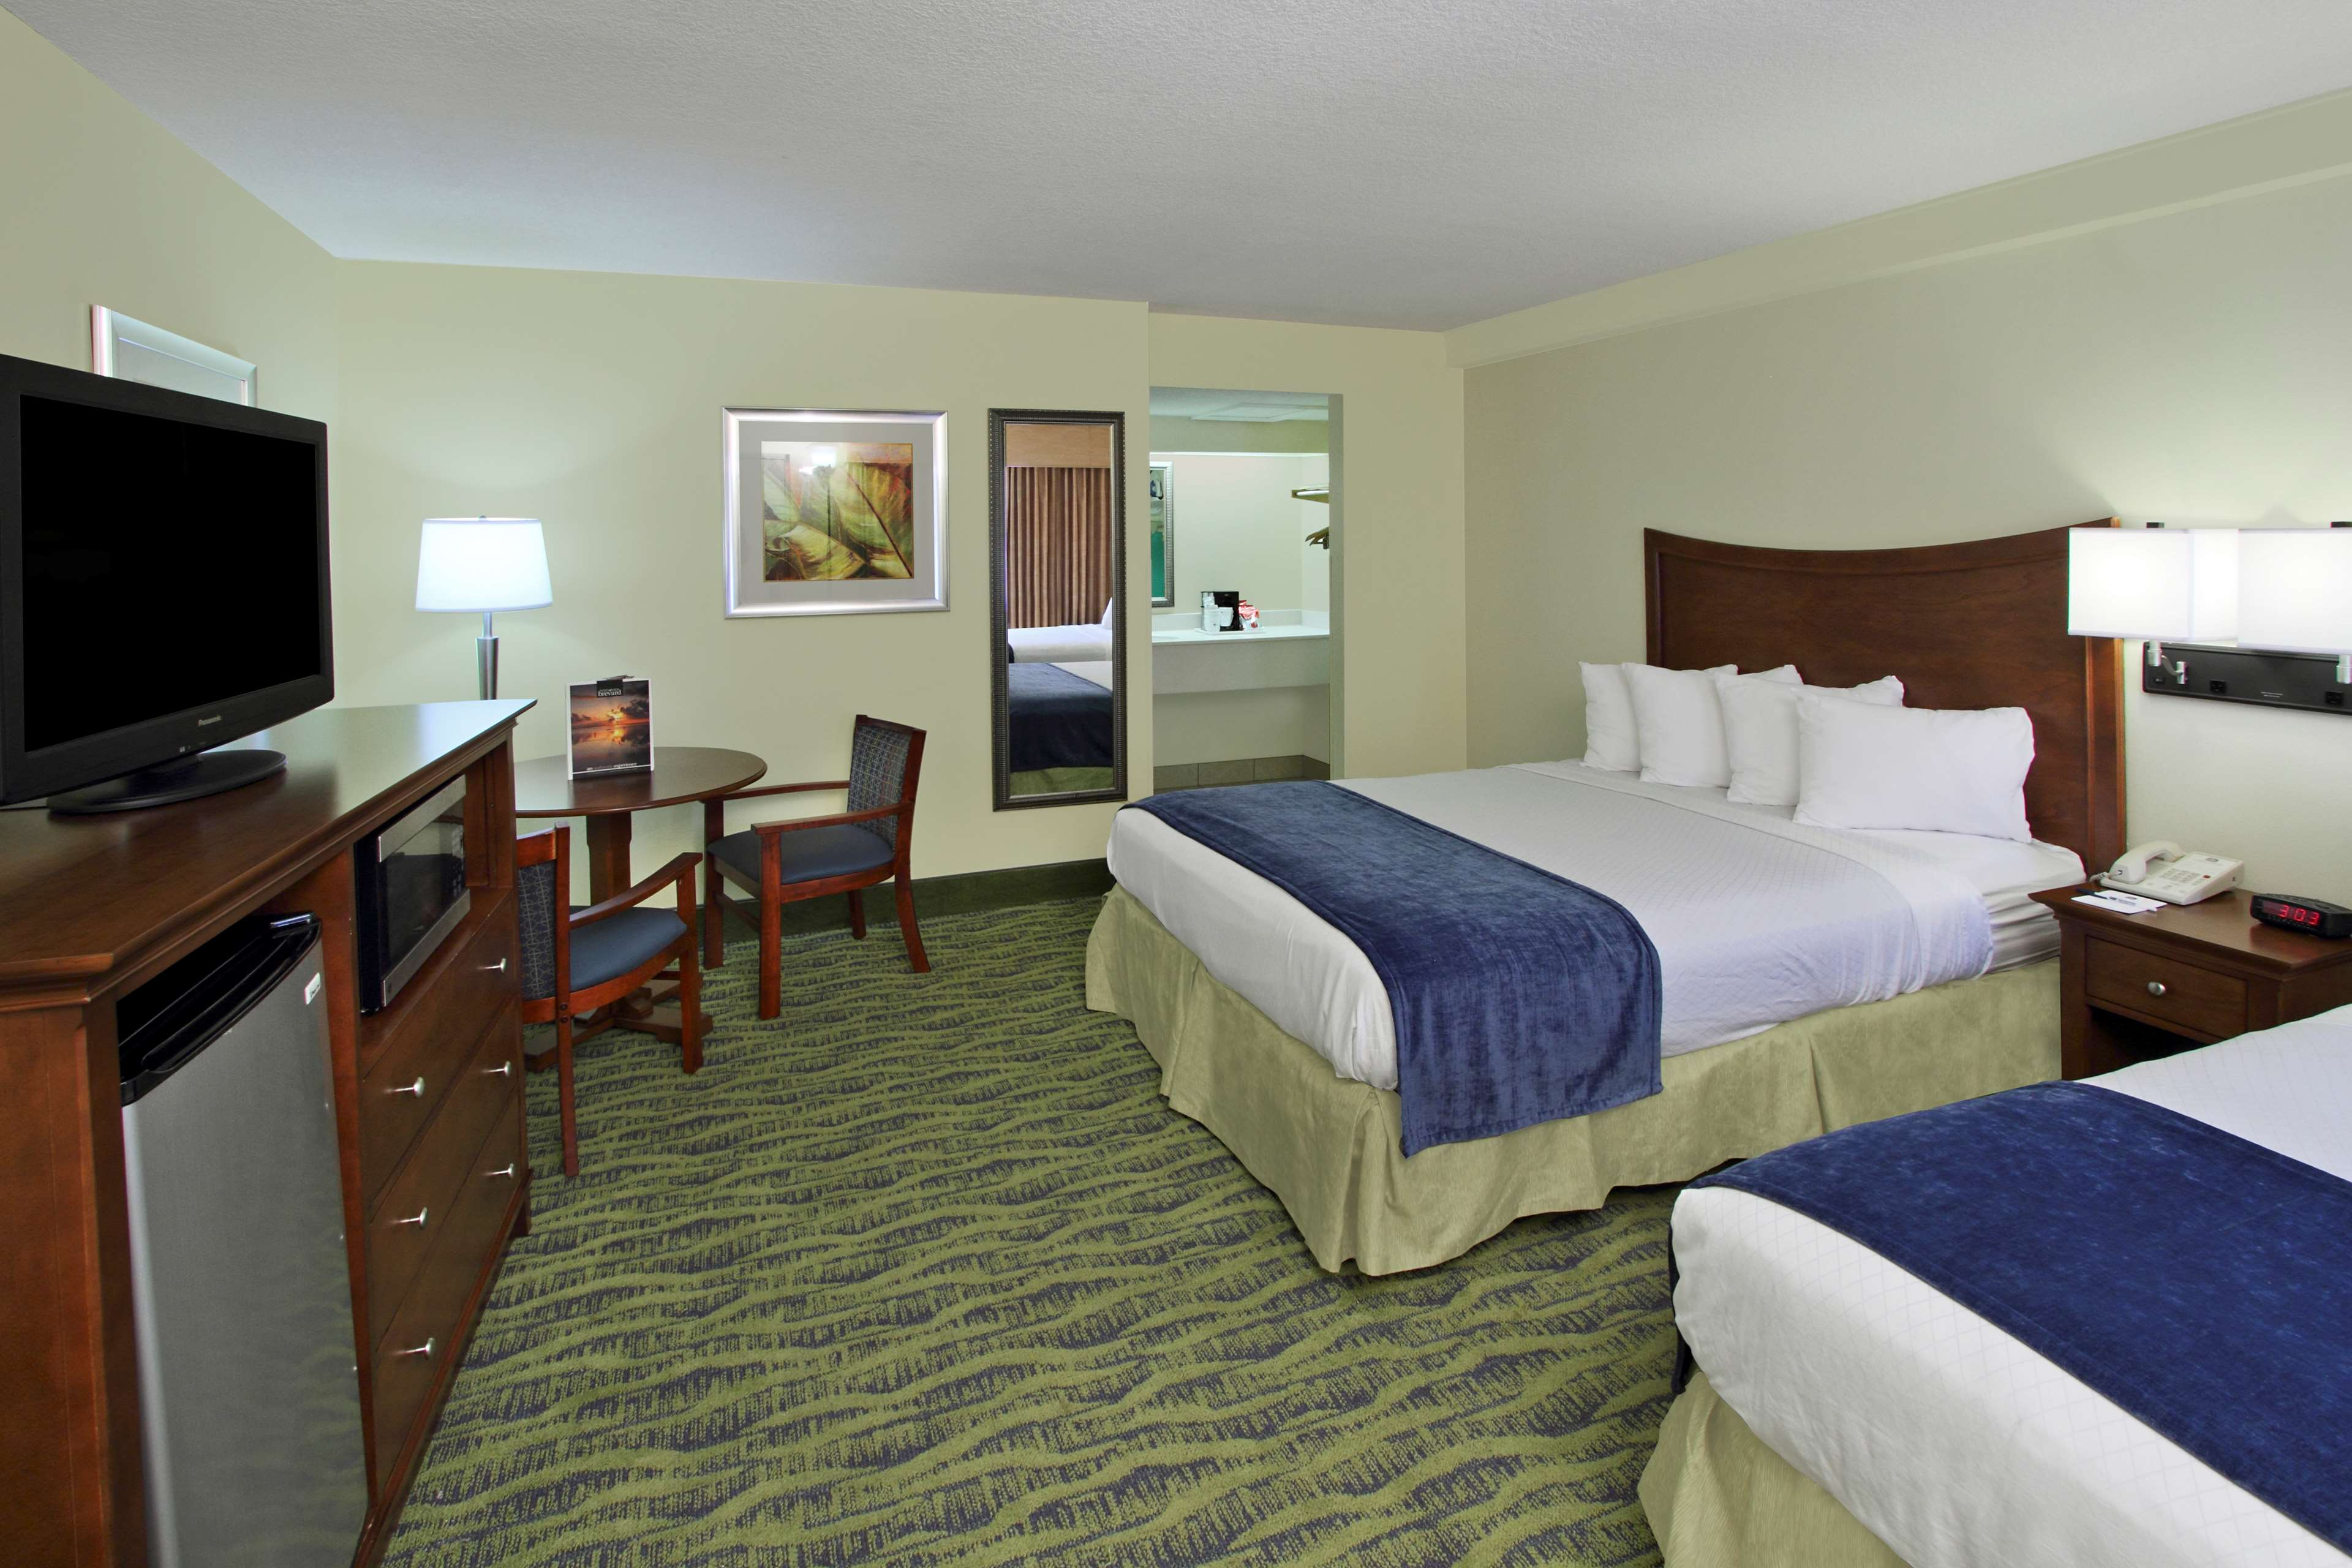 Best Western Cocoa Beach Hotel & Suites image 39